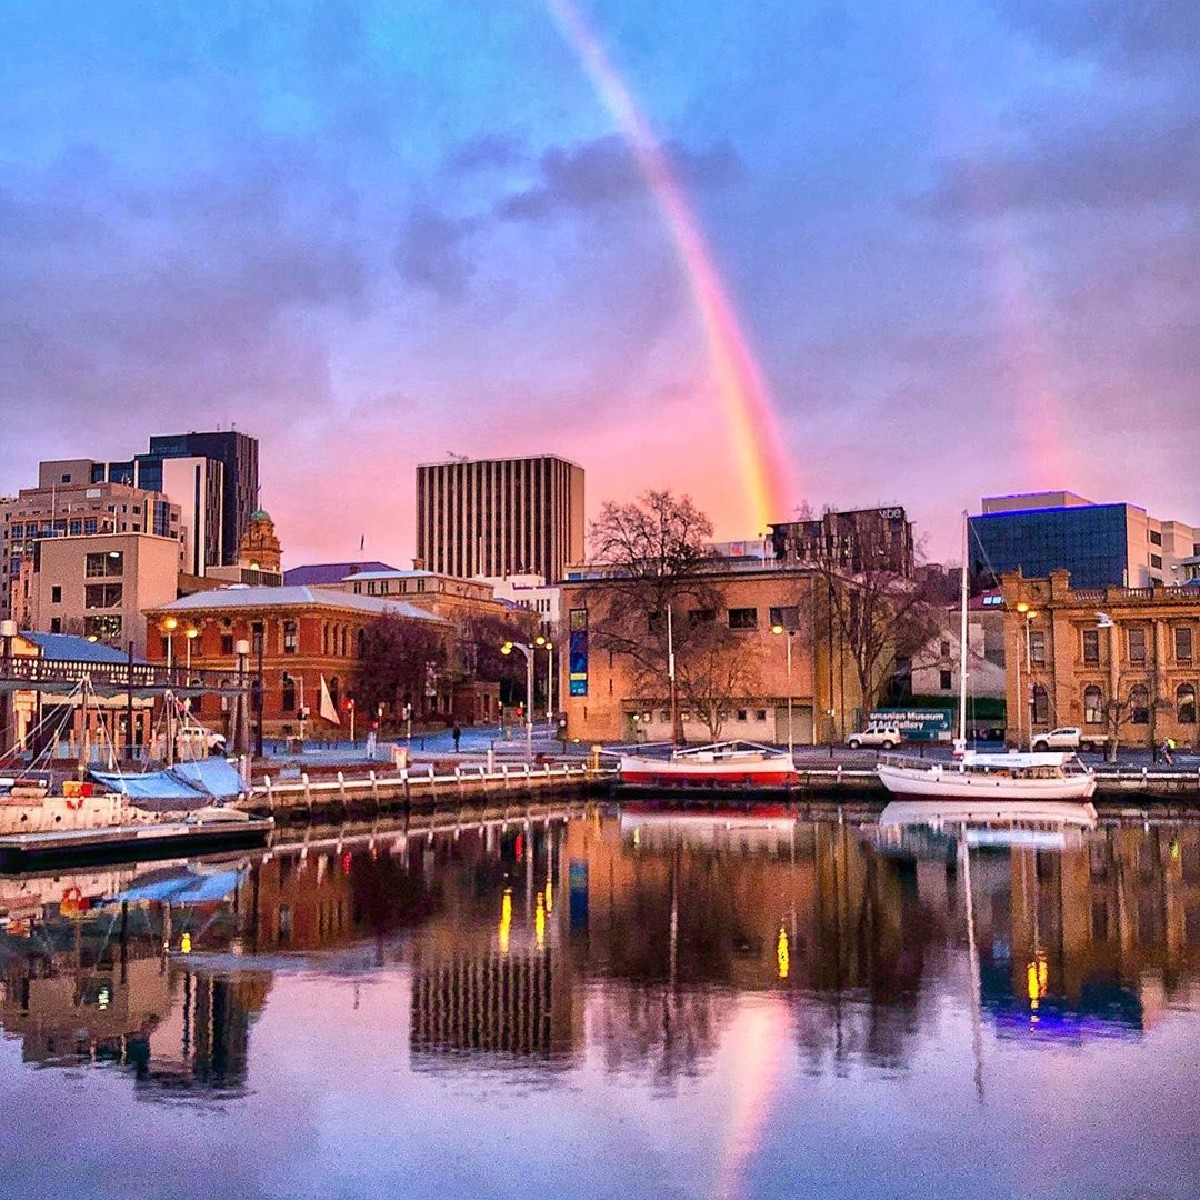 Follow the rainbow to @HobartandBeyond🌈   IG/katypotaty77 snapped this spectacular shot of @tasmania's capital city which is famous for its picturesque waterfront that comes alive at night.   #seeaustralia #discovertasmania #TassieStyle #hobartandbeyond https://t.co/idFA0rETif